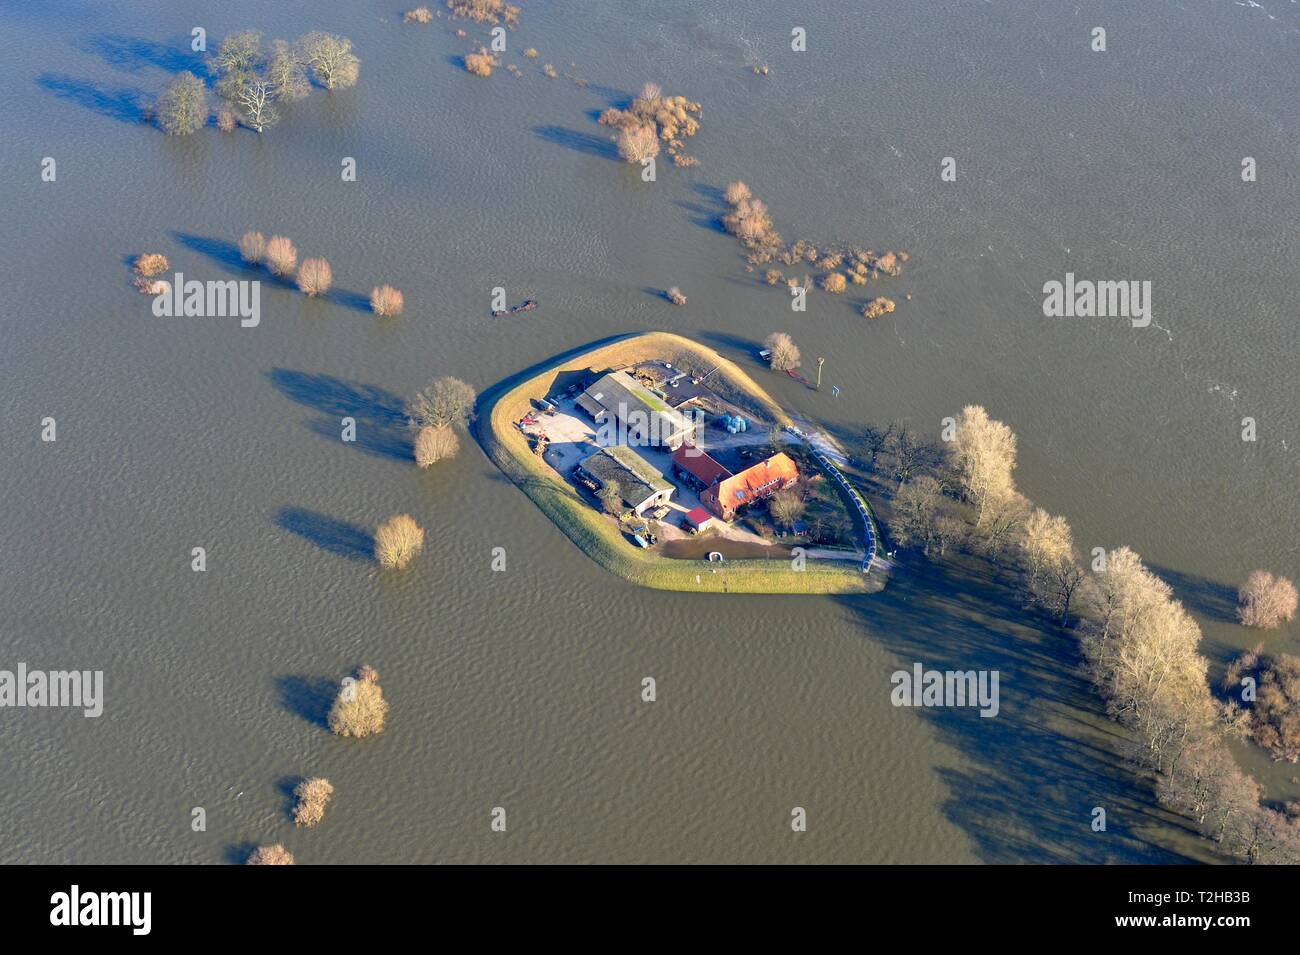 Farm at Heisterbusch surrounded by the Elbe flood, aerial view, Bleckede, Lower Saxony, Germany Stock Photo